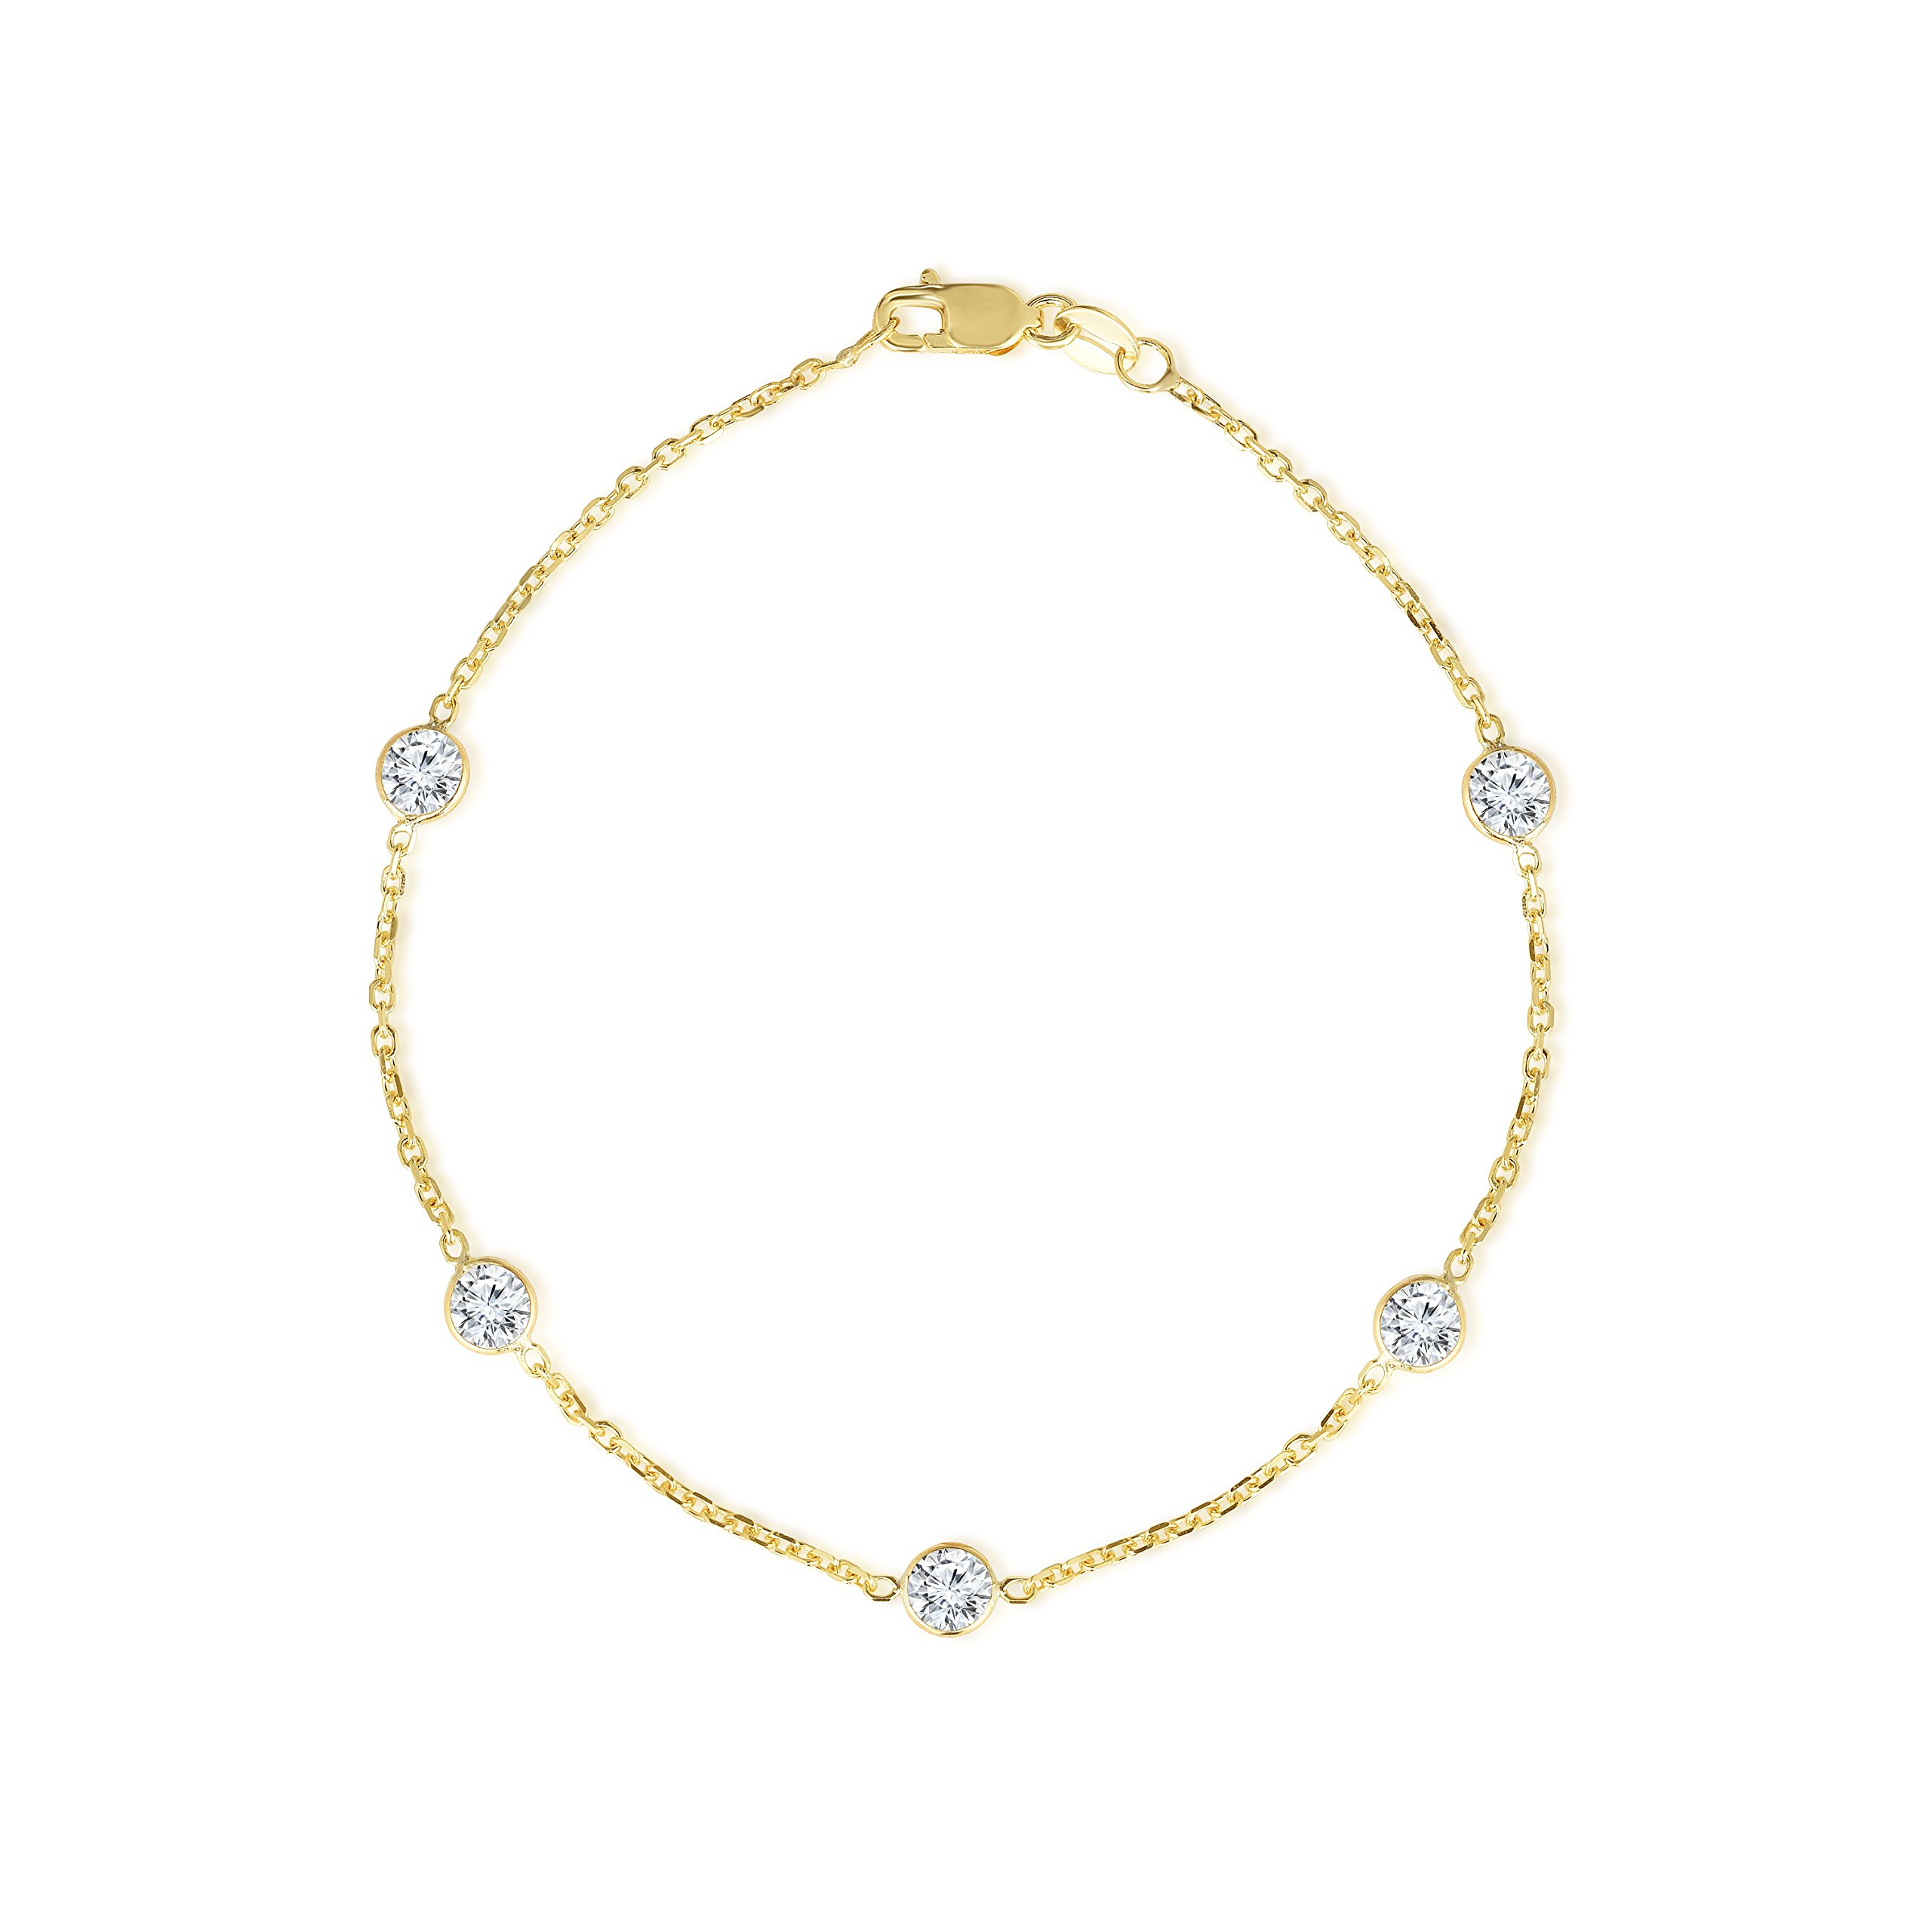 14k Yellow Gold Cubic Zirconia Cable Anklet, Round 4mm CZ, 9 inch